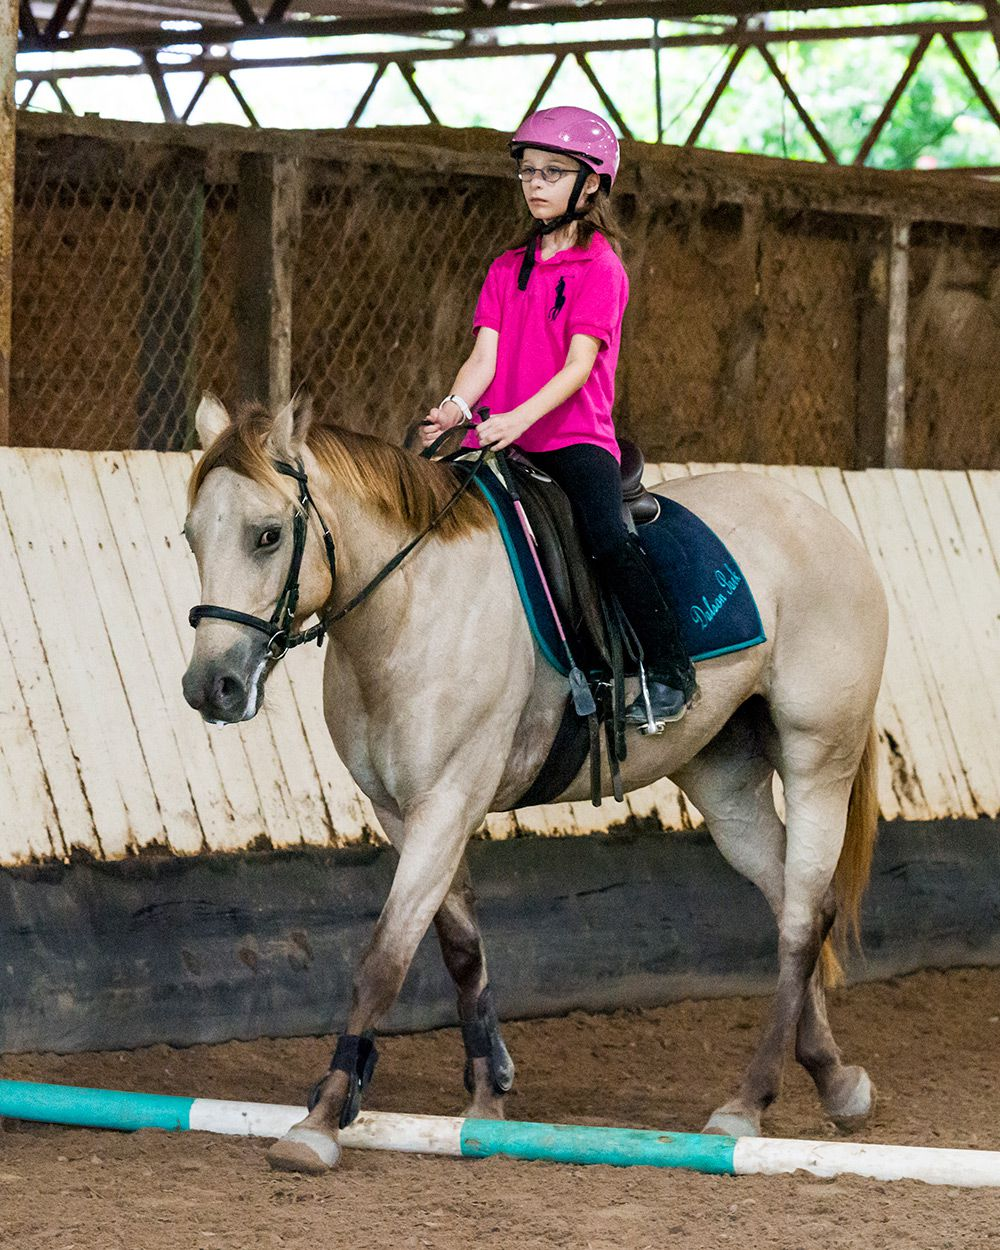 Semi-Private Horse Riding Lessons